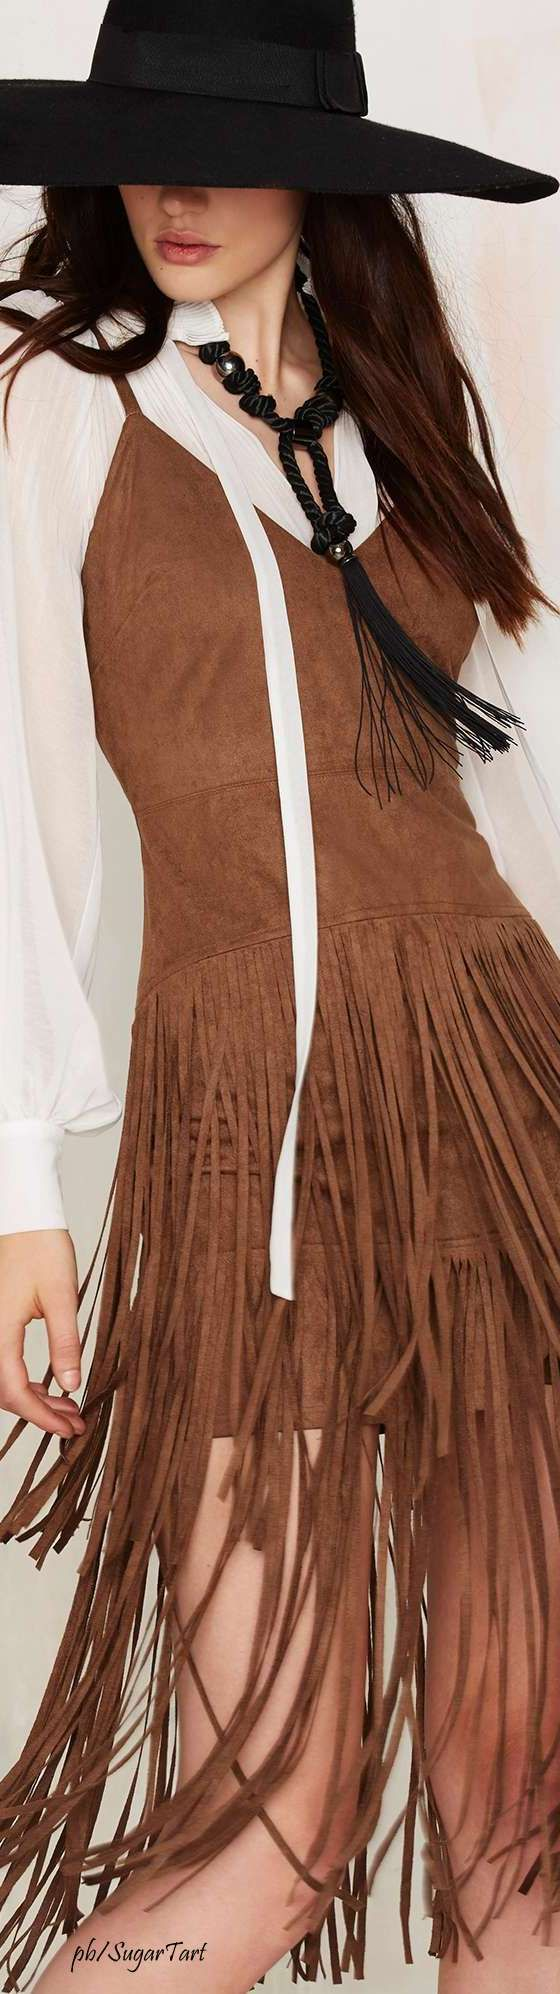 Fringed leather vest ≫∙∙☮ Bohème Babe ☮∙∙≪• ❤️ Babz ✿ιиѕριяαтισи❀ #abbigliamento #bohojewelry #boho